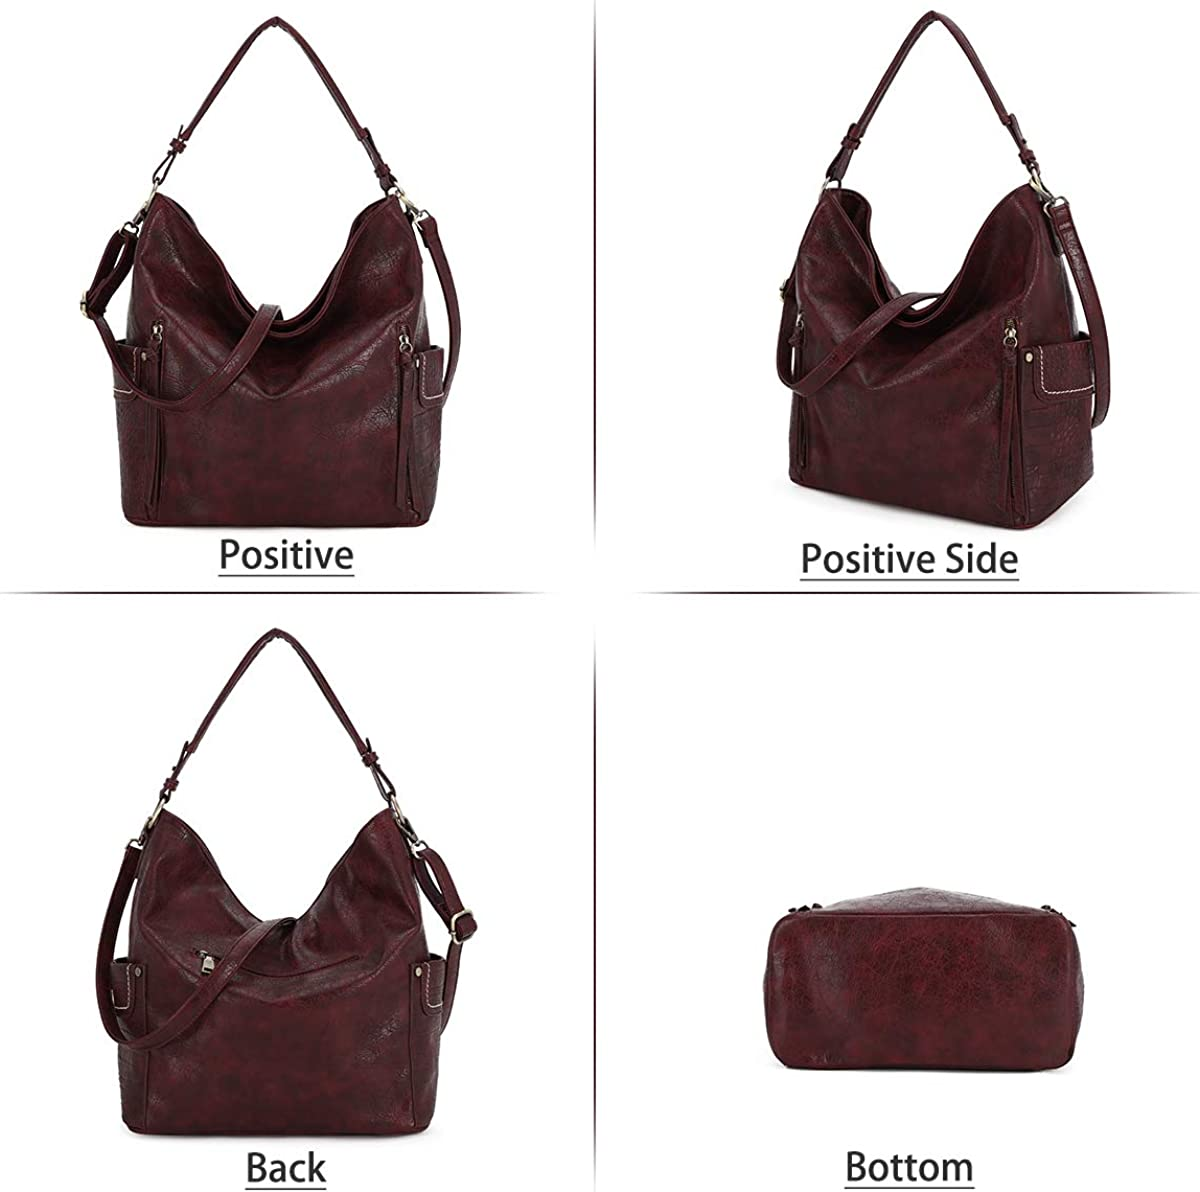 Angel Barcelo Satchel Purses for Women Hight Quality Leather Purses and Handbags,Tote Purse